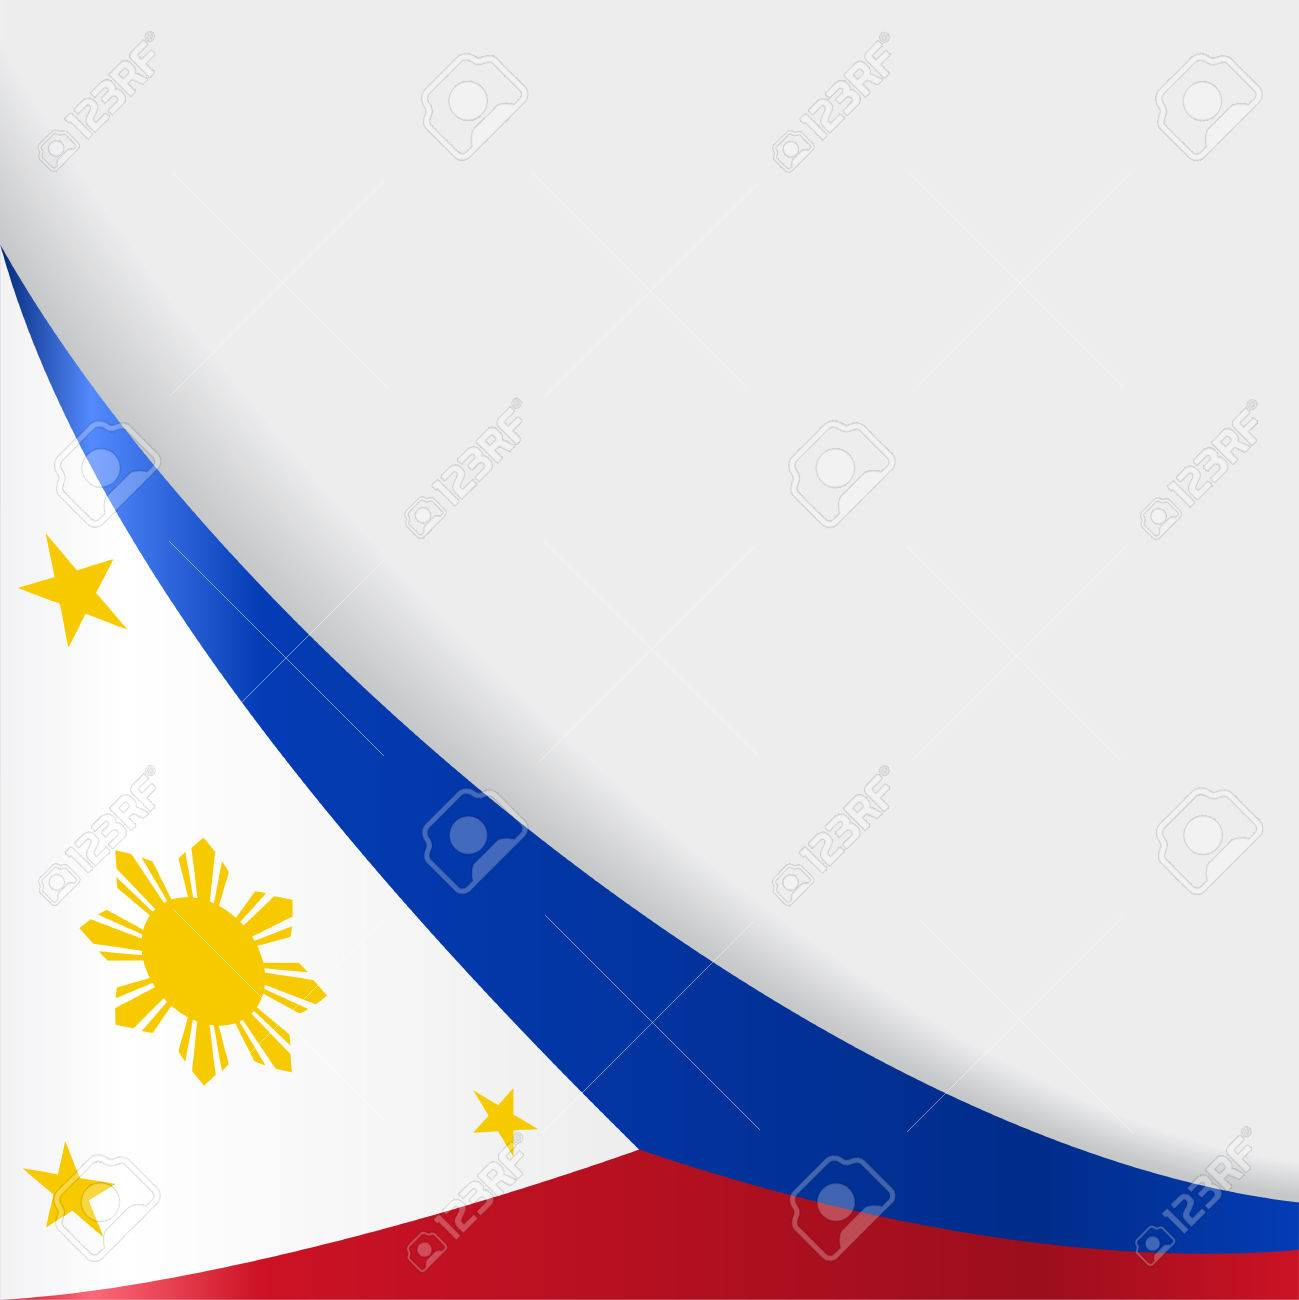 Philippines Flag Background Vector Illustration Royalty Free Cliparts Vectors And Stock Illustration Image 83125394 Free philippine flag vectors (25). philippines flag background vector illustration